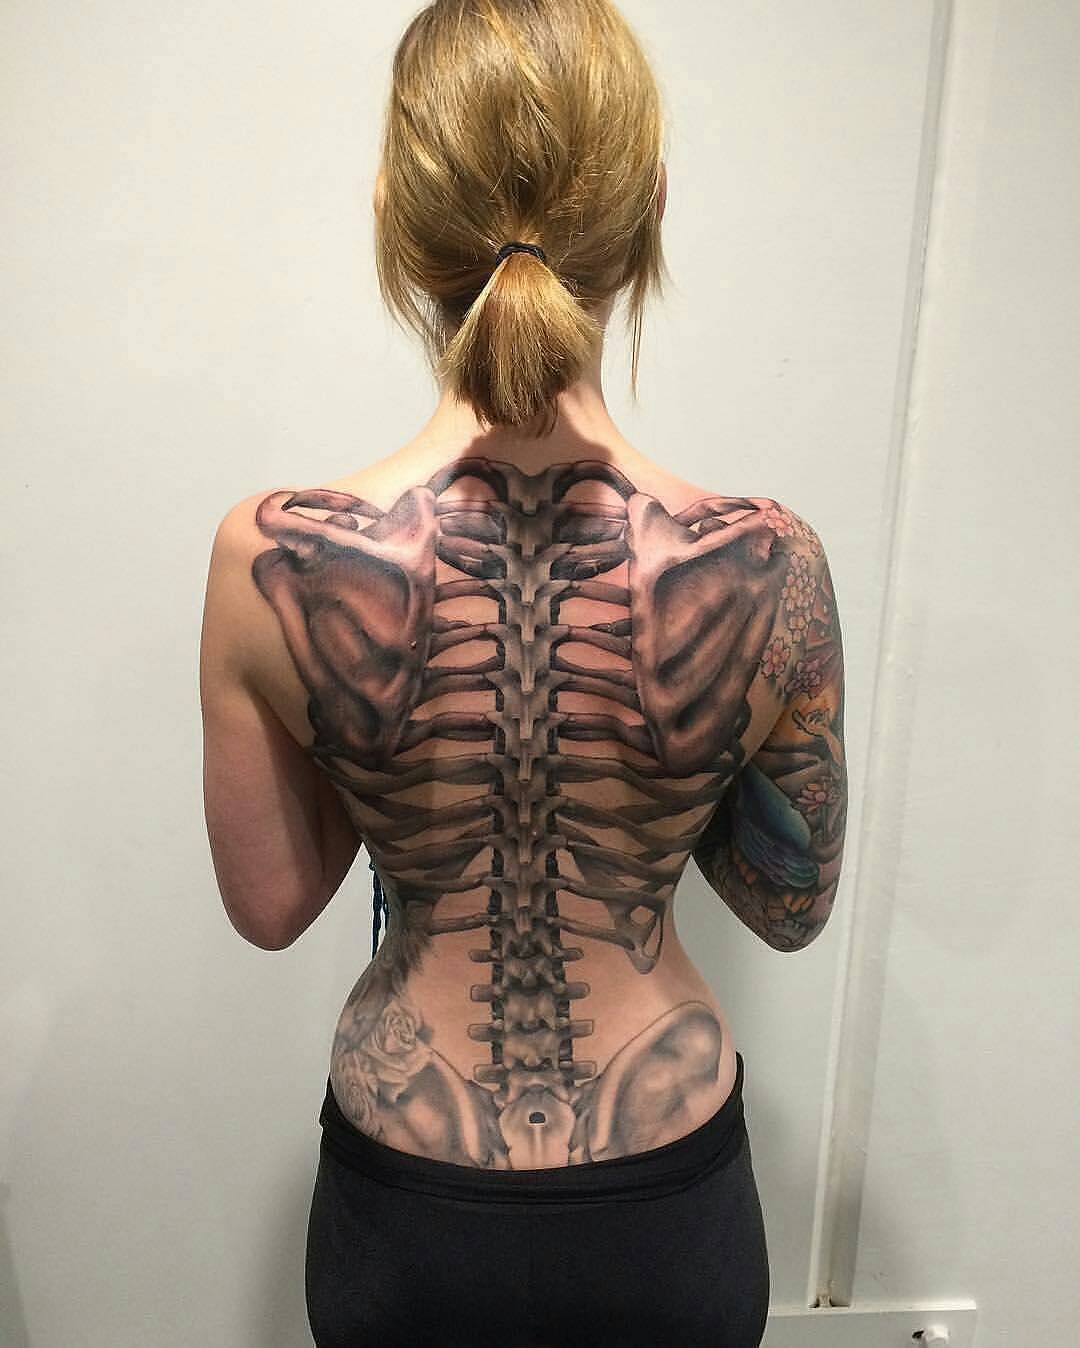 spine with a tattooed skeleton